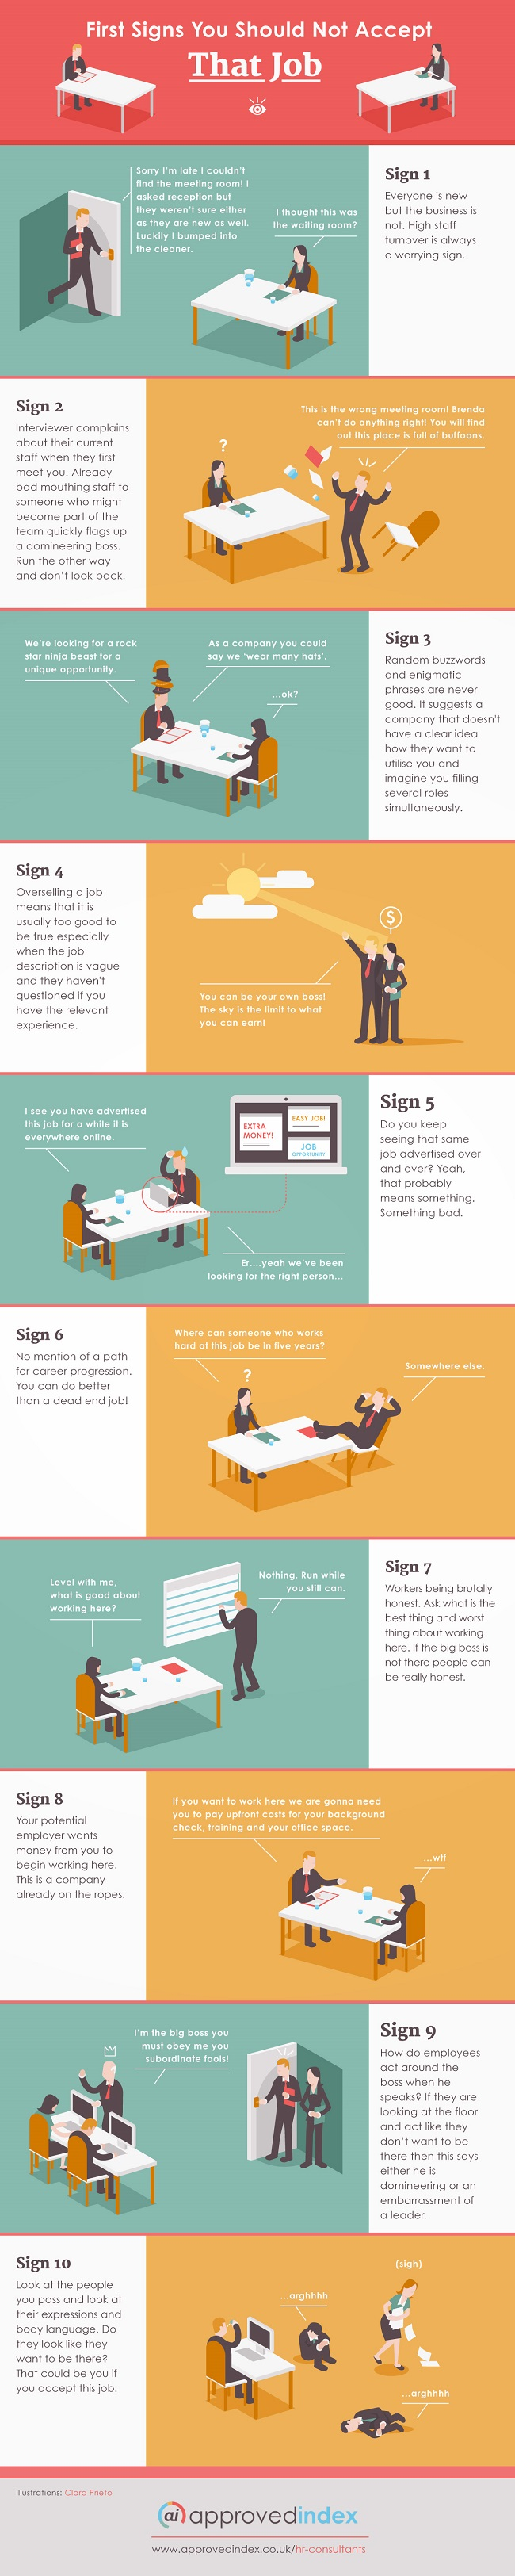 Job-signs-infographic